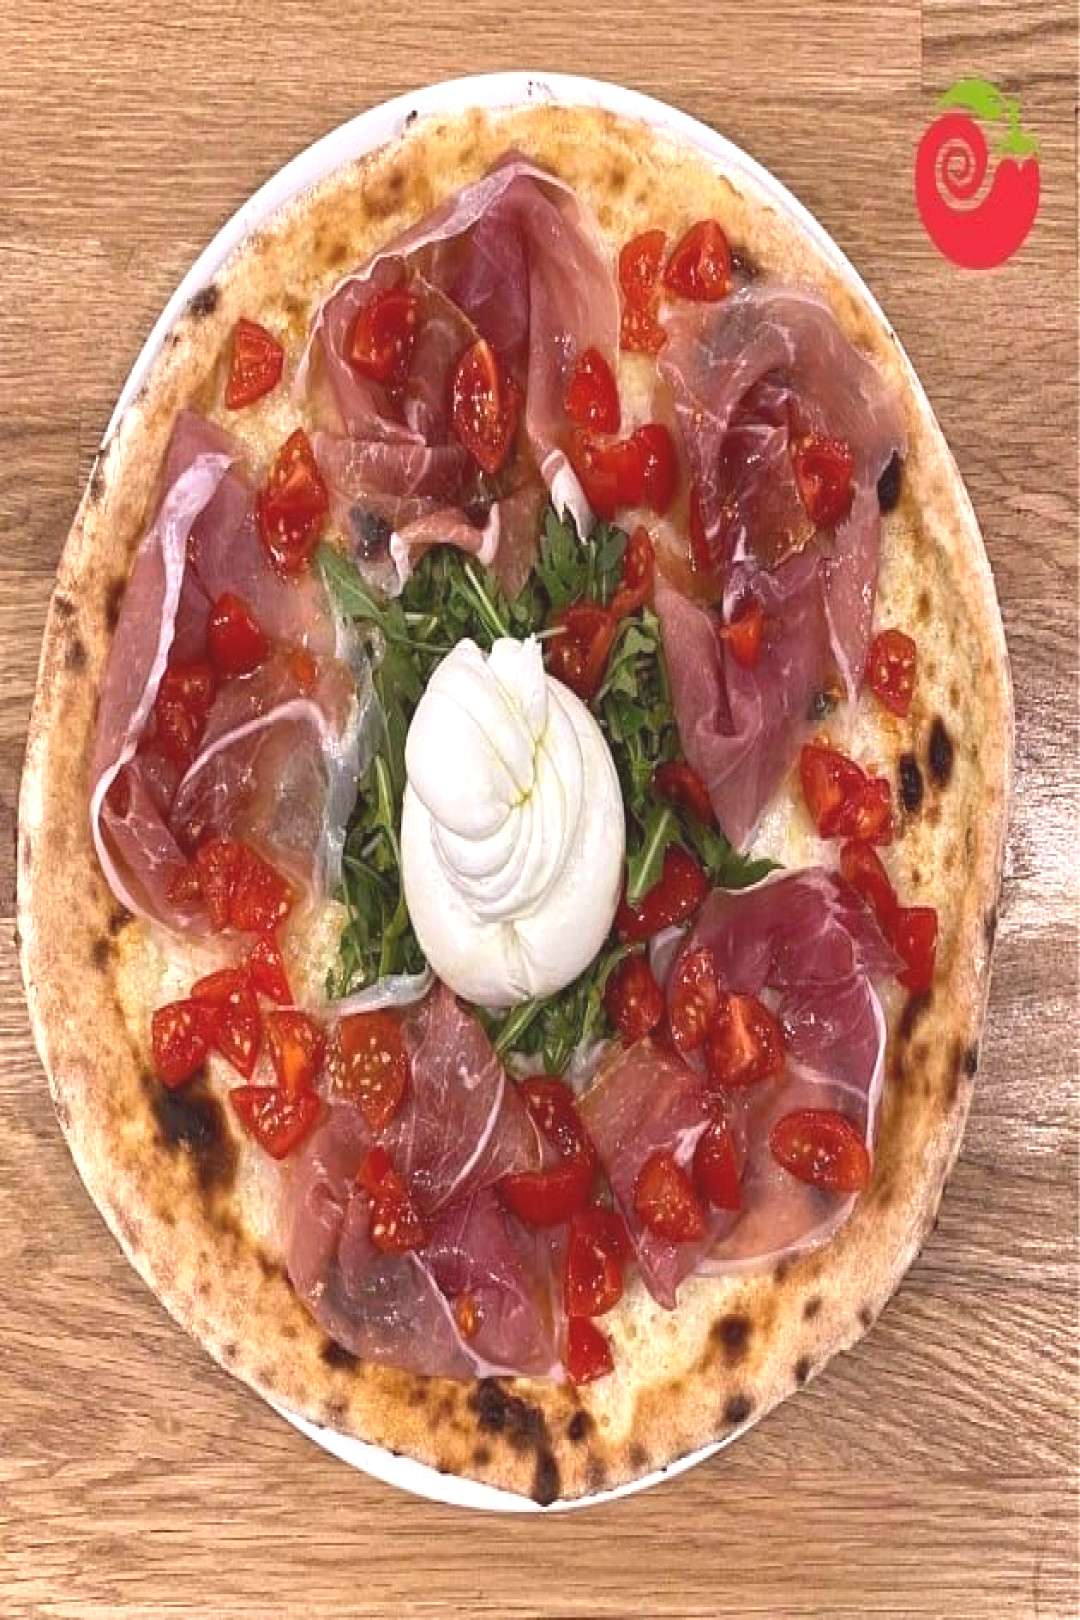 Leave The Restaurants And We Will Show You How To Make An Italian Pizza Molto Buona In 3 Step... -